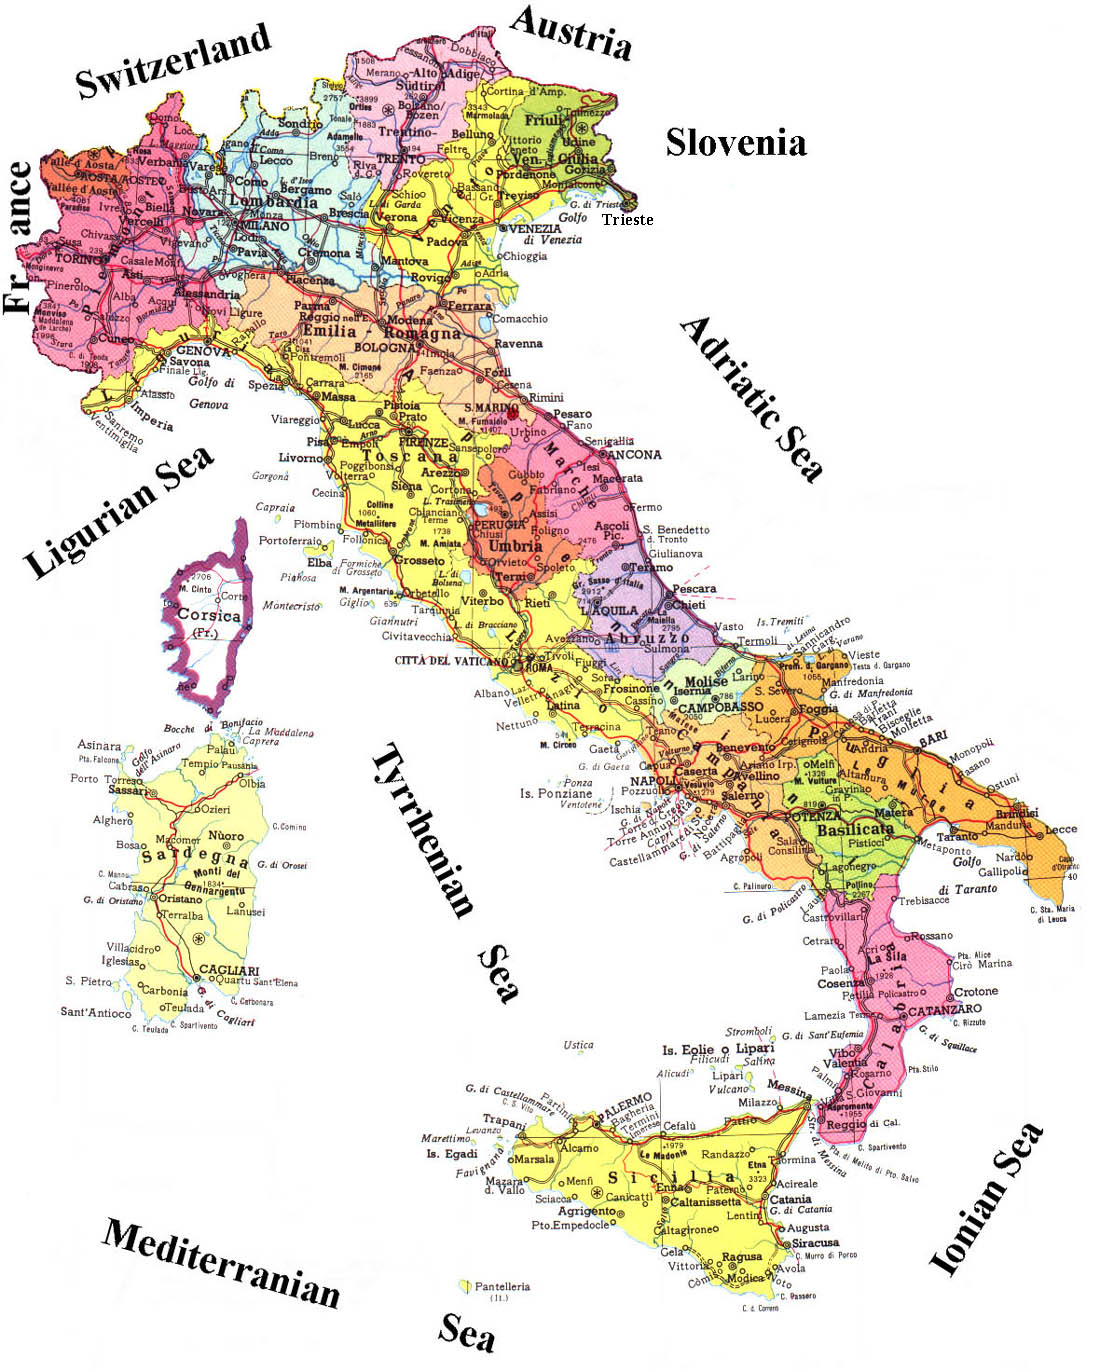 travel guide Map of Italy Country Area – Travel Map Of Italy